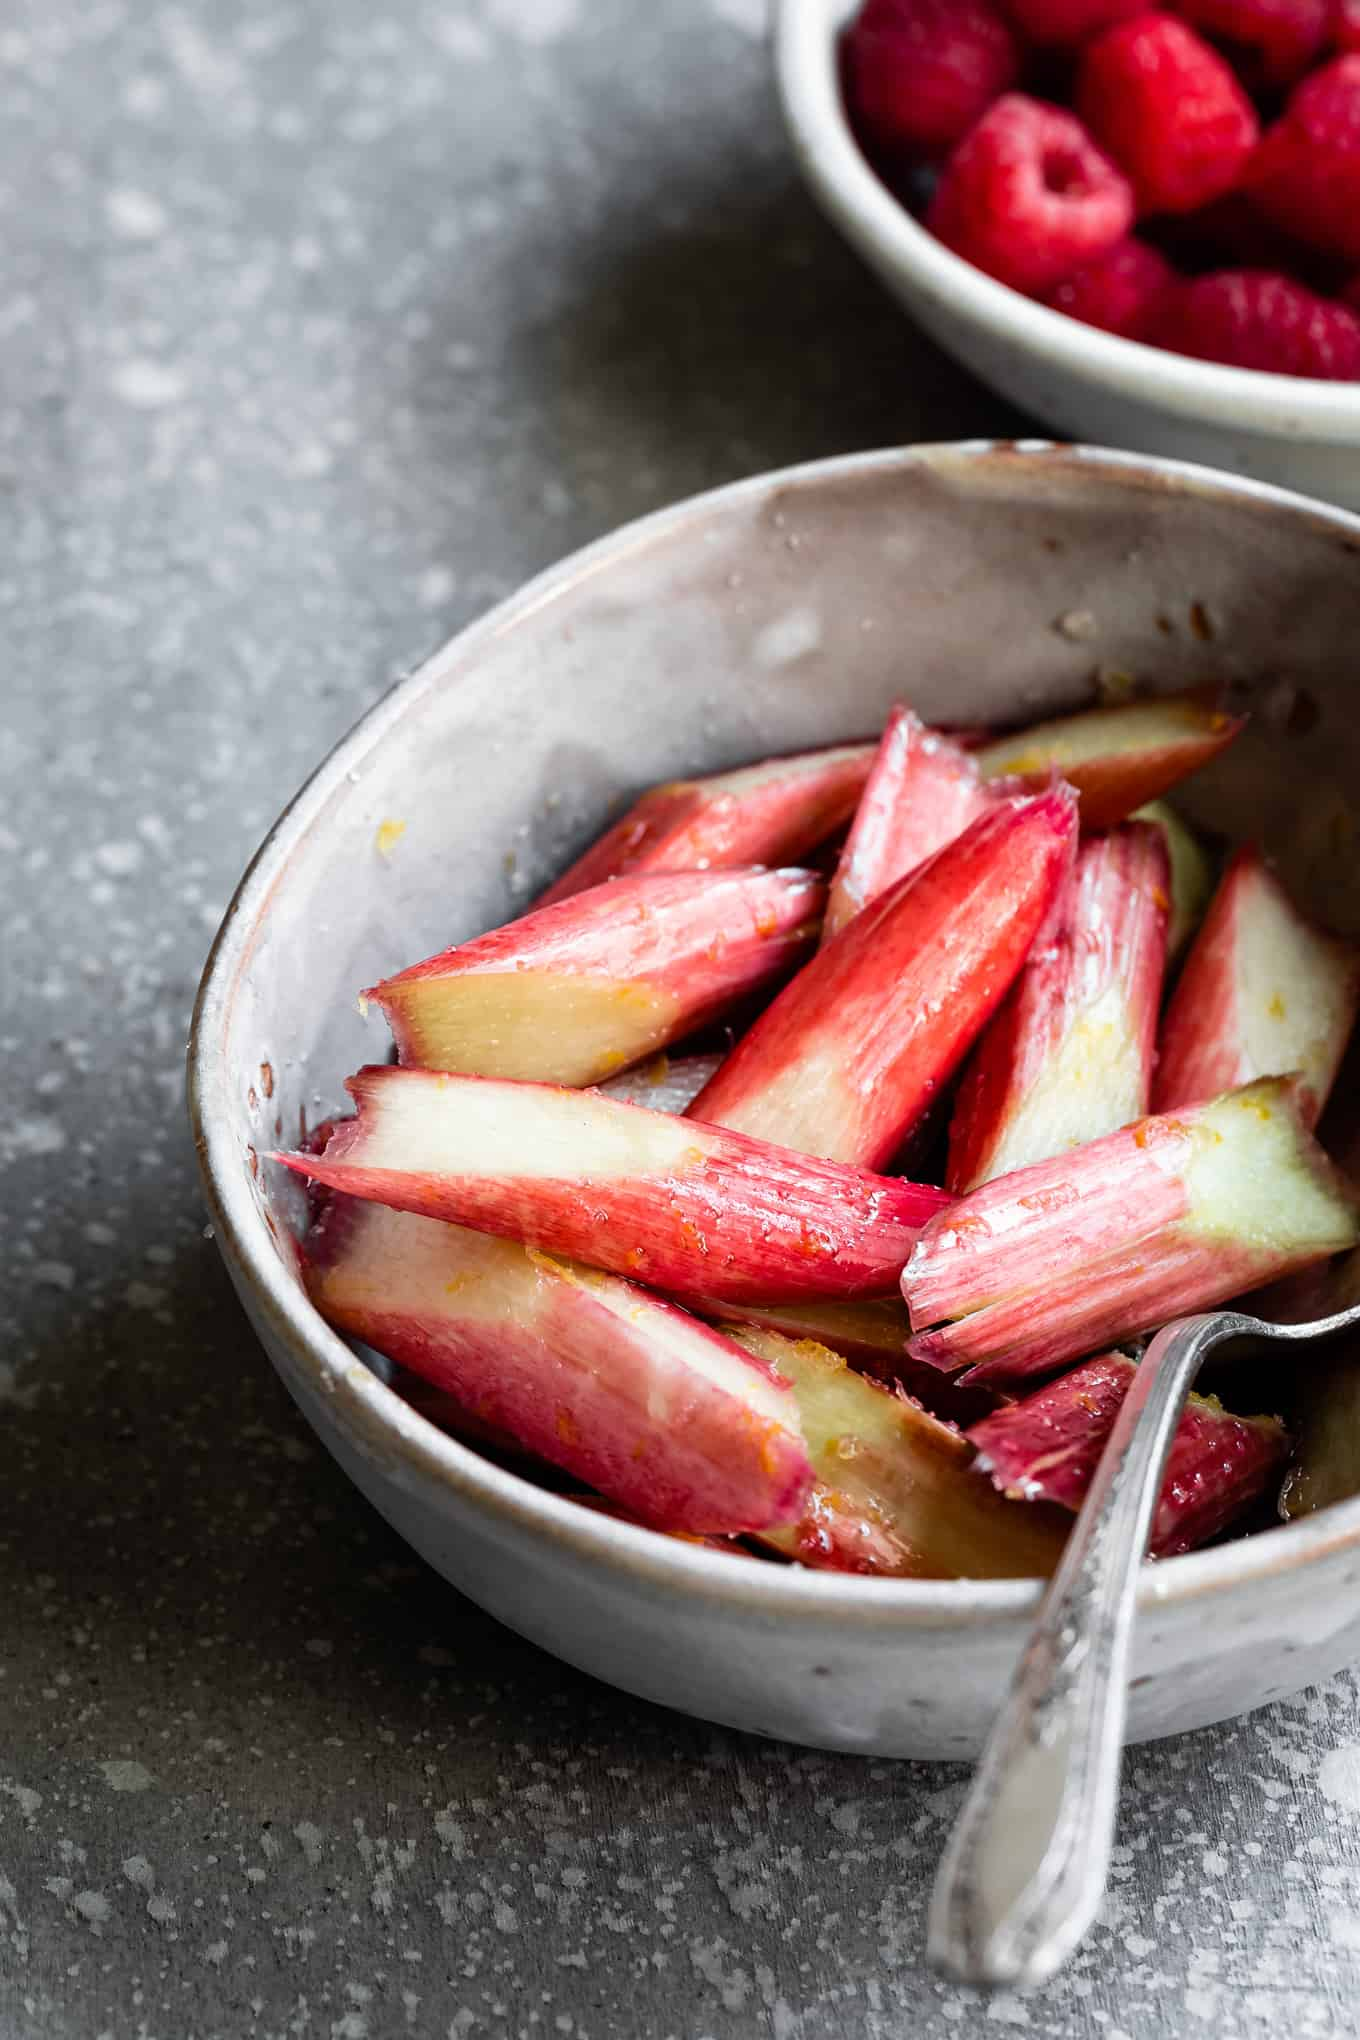 Macerated Rhubarb